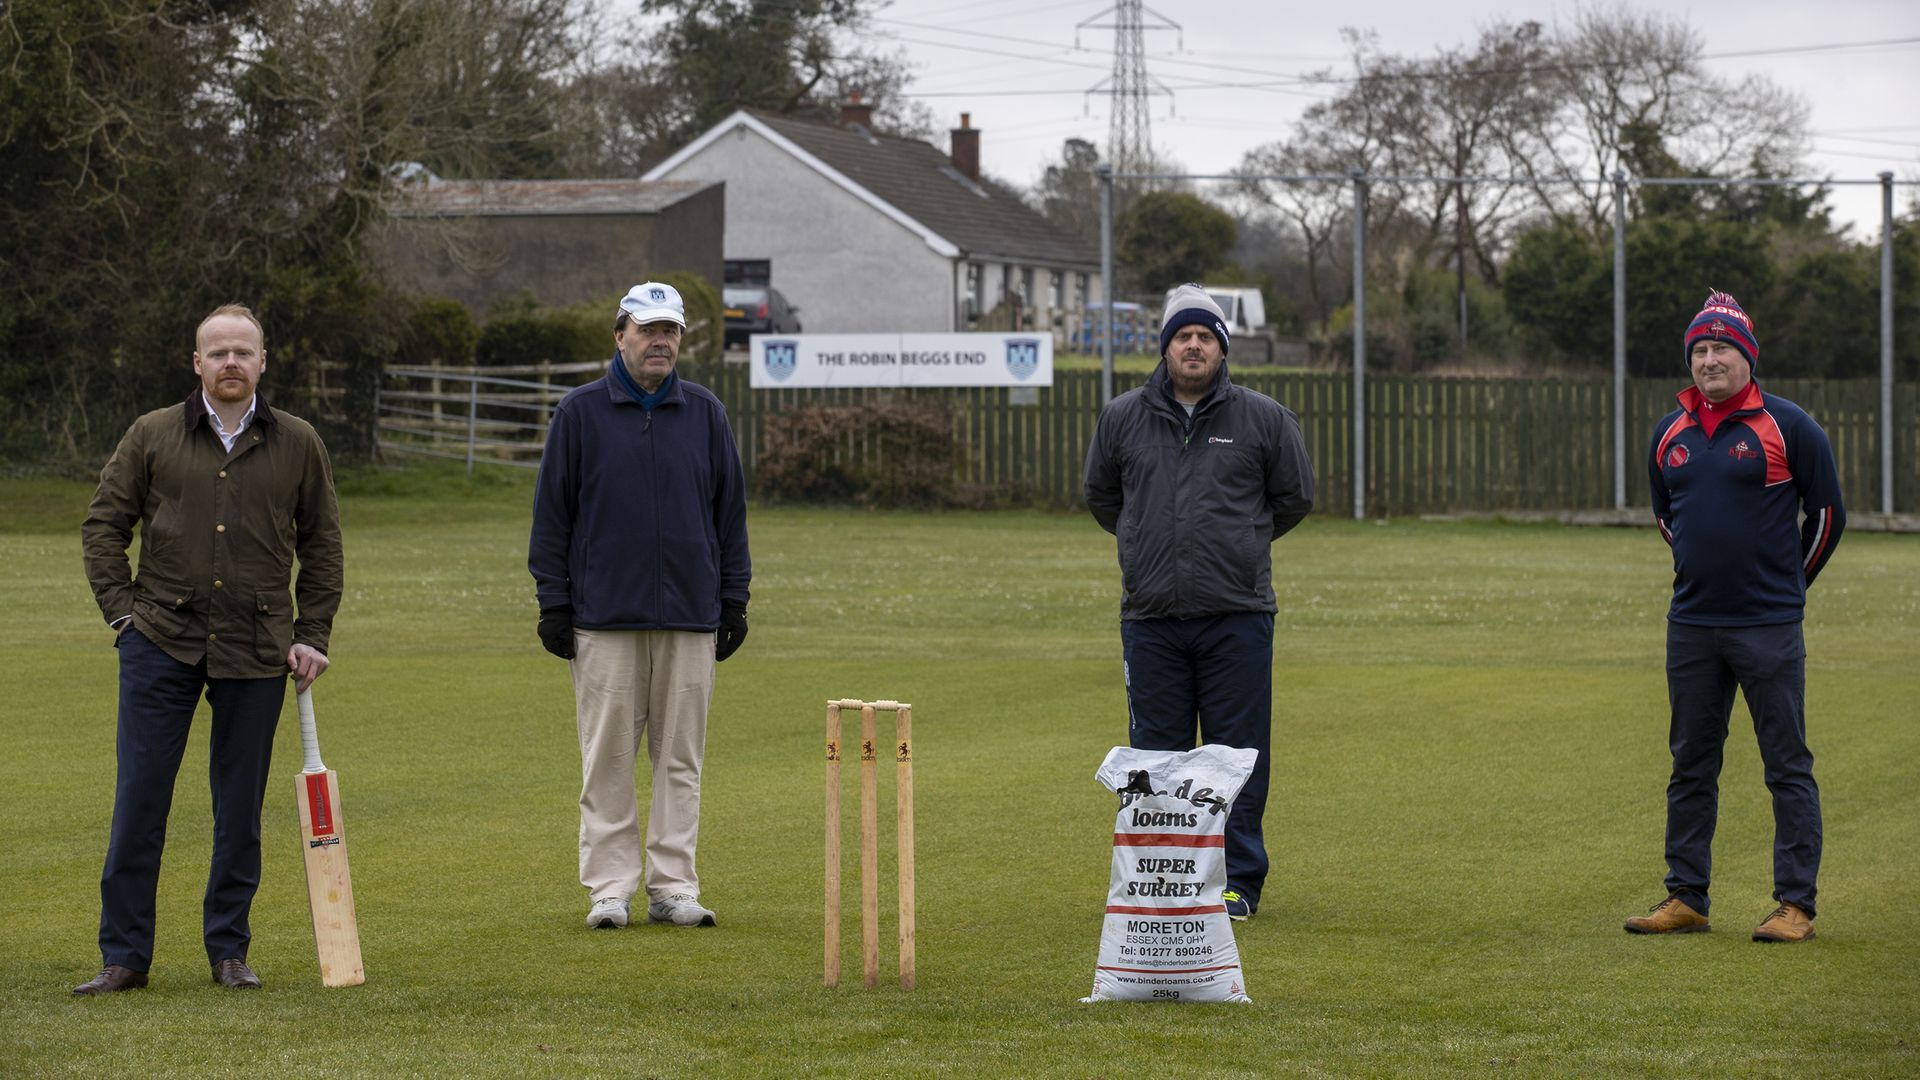 (left to right) UUP MLA John Stewart, President of the Northern Cricket Union (NCU) Roger Bell, NCU Grounds Committee Member Michael Kennedy and NCU Cricket Operations Manager Uel Graham on the crease of Carrickfergus Cricket Club. The special cricket pitch soil used for generations may have to be dug up and replaced due to the Northern Ireland Protocol, according to a groundsman. - Credit: PA